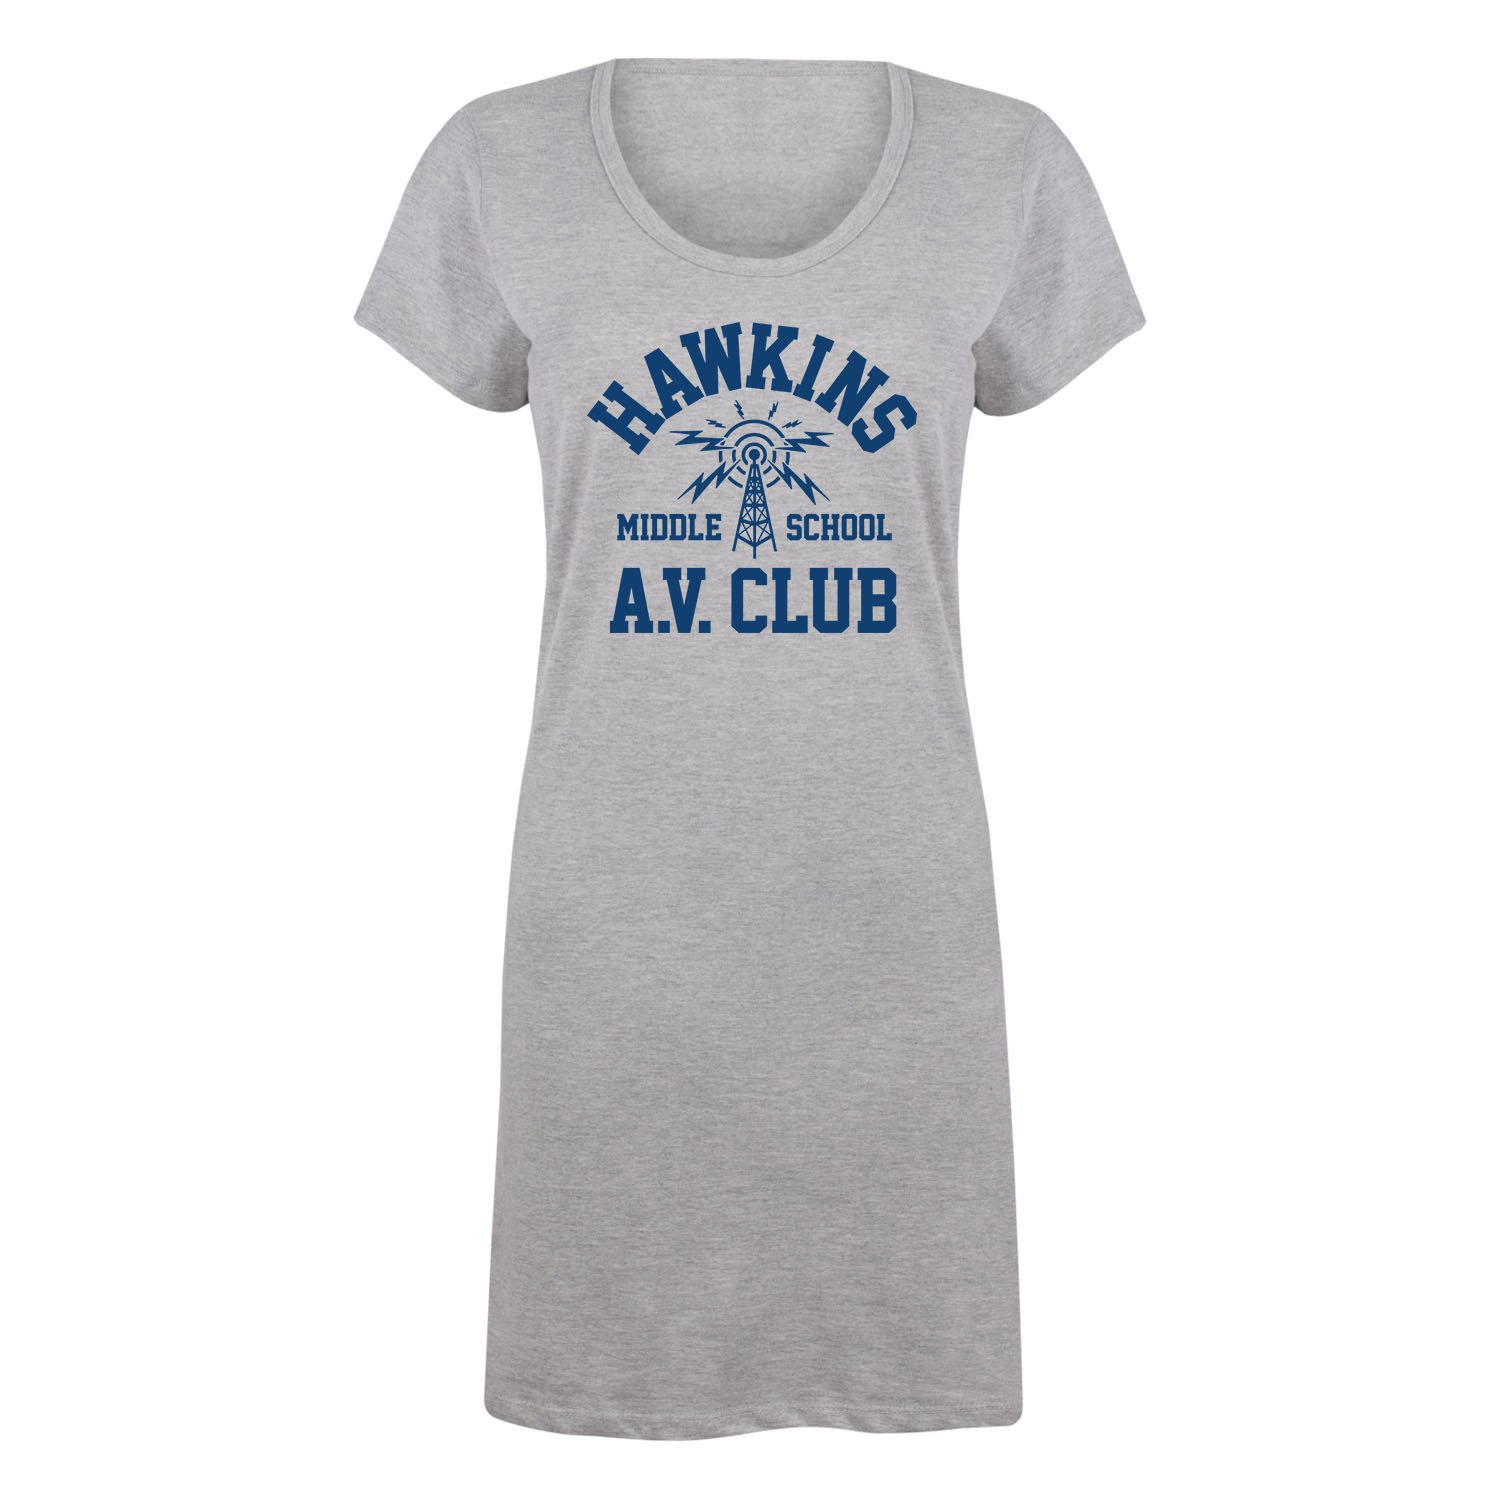 Instant Message Hawkins Middle School Av Club-Ladies Sleep Shirt Nightgown Air Waves